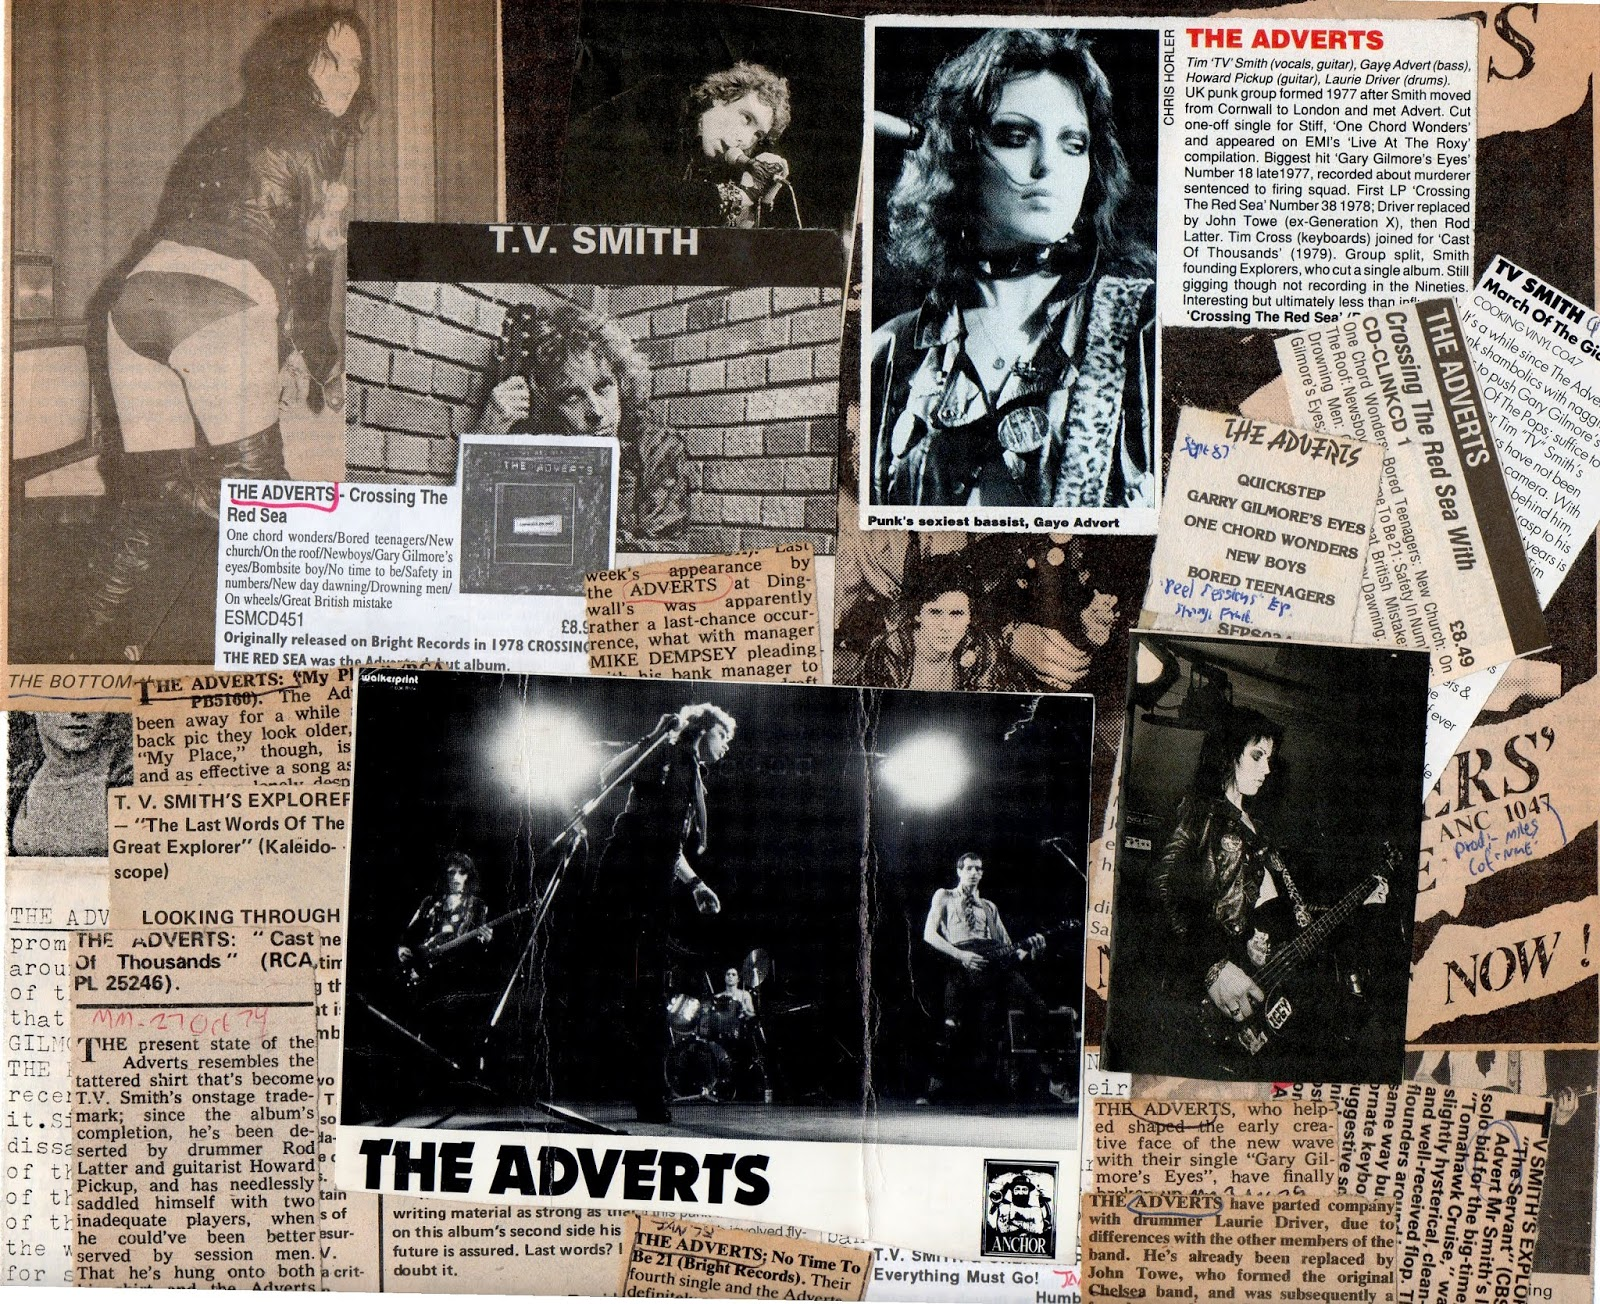 Eight Miles Higher Tv Smith And The Adverts